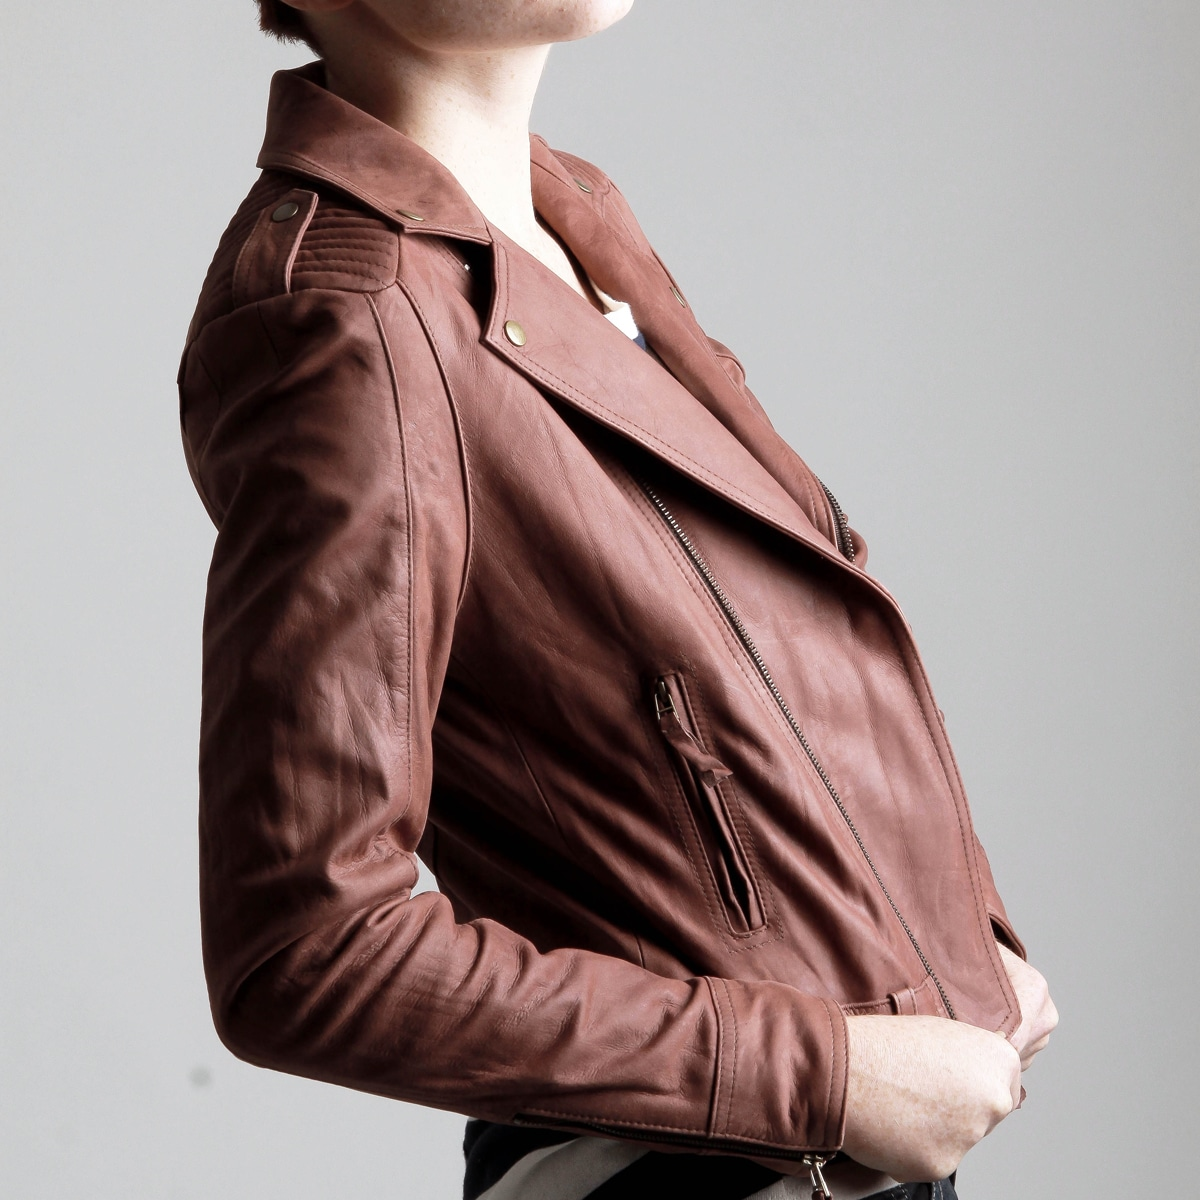 United Face Women's Vintage-inspired Textured Leather Moto Jacket